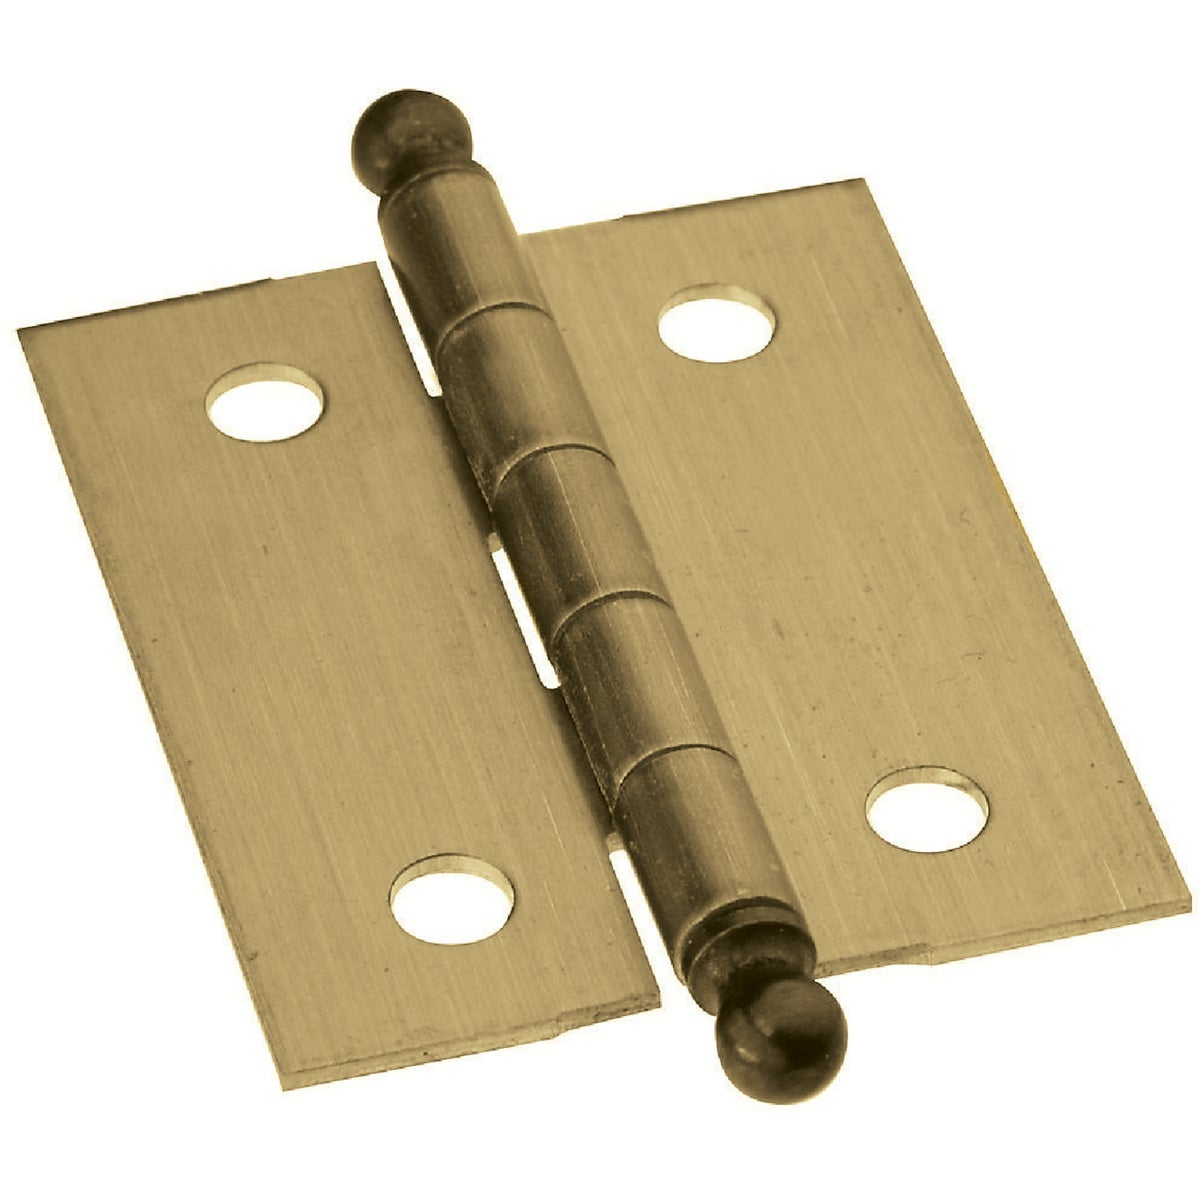 1-1/2X1-1/4 AB HINGE - N213538 by National Mfg Co